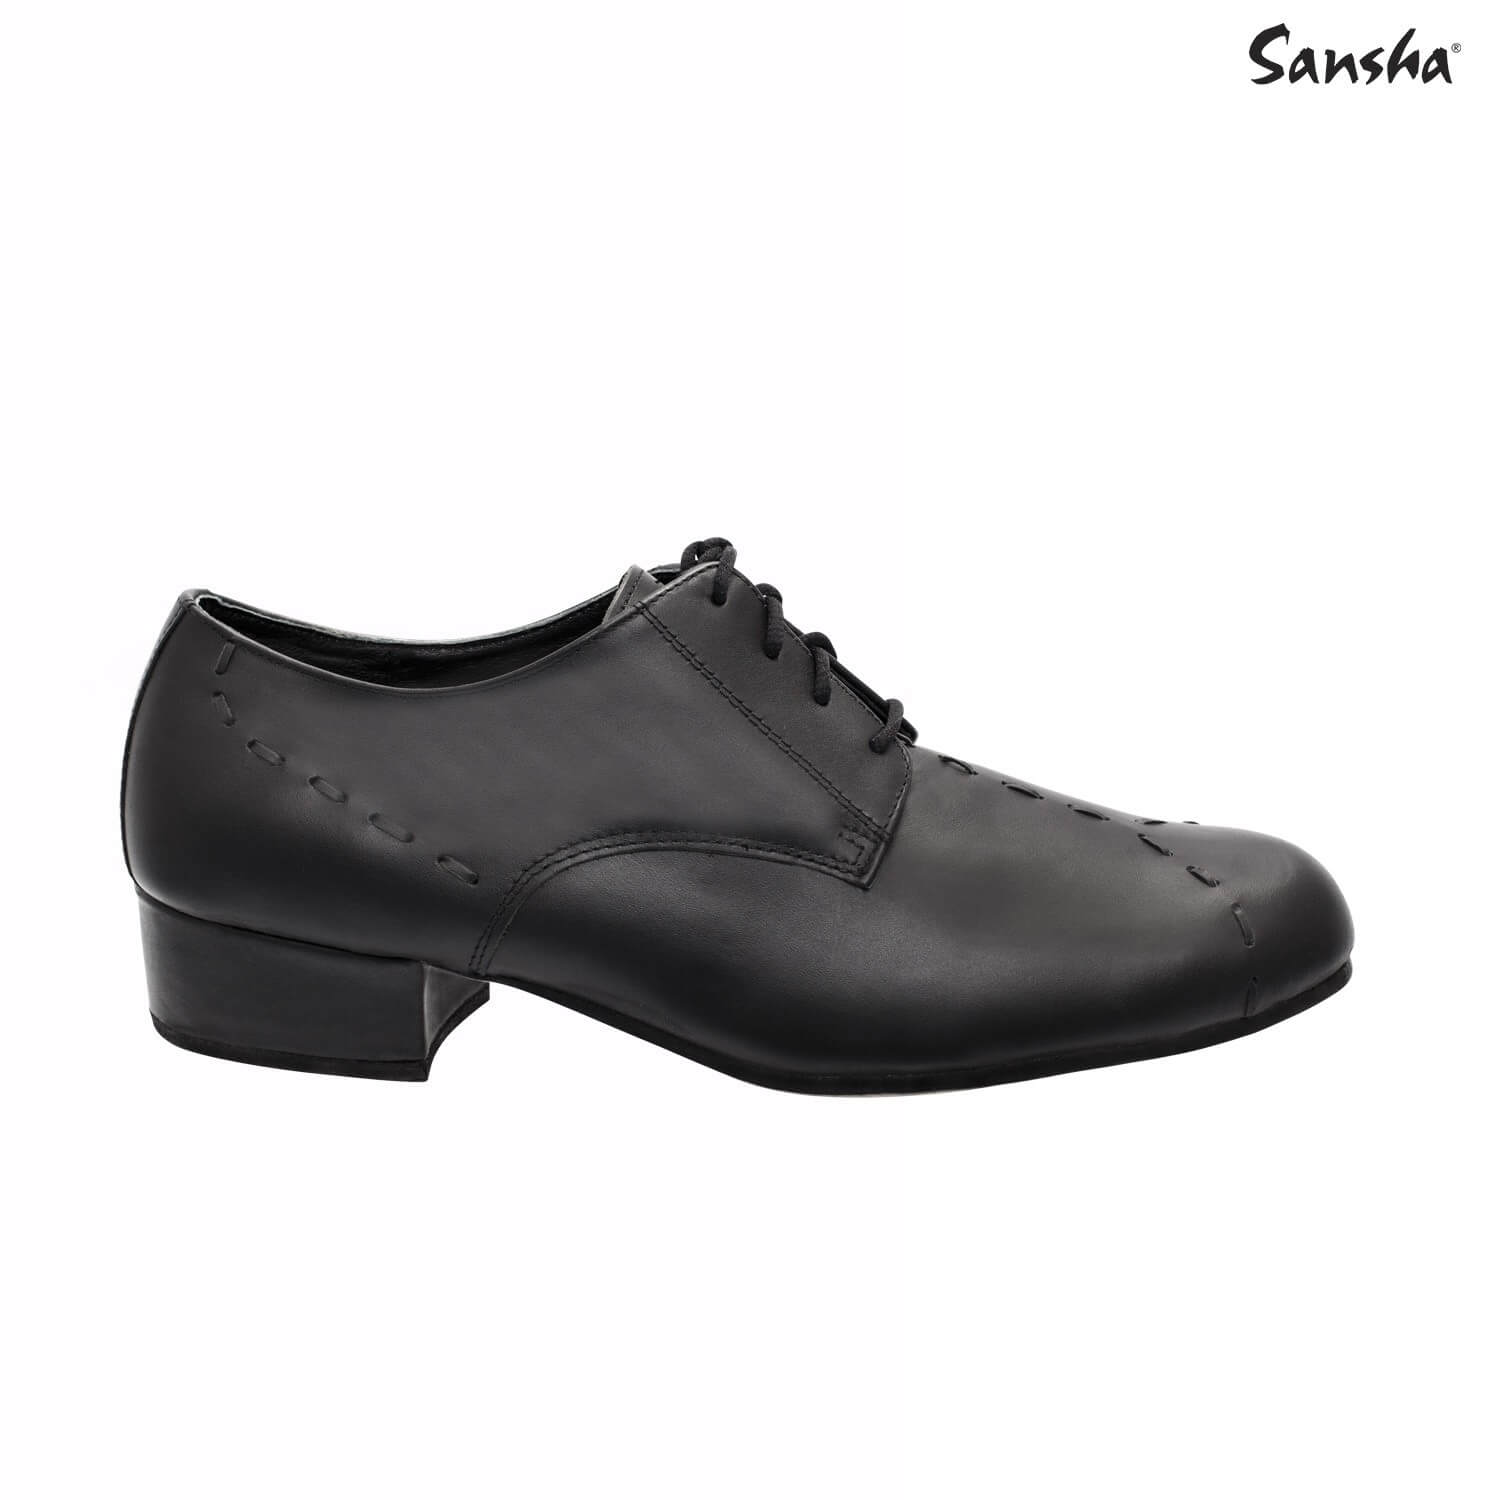 Sansha CM81L Men's Tarditional Charcater Shoes